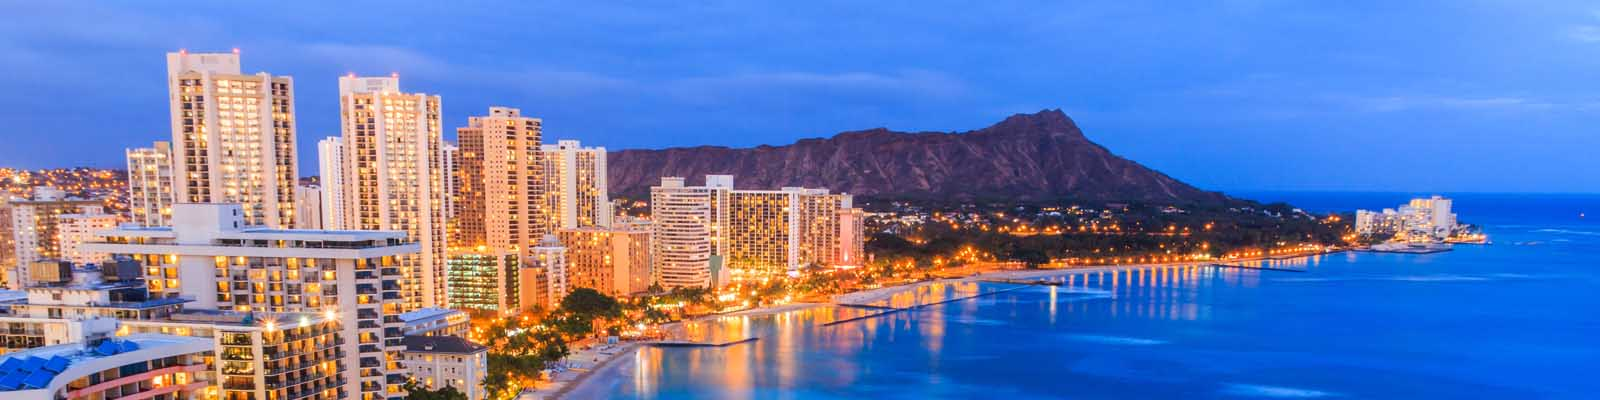 This is a coastal skyline of Honolulu at night. ASTA-USA provides professional translation services in this city.